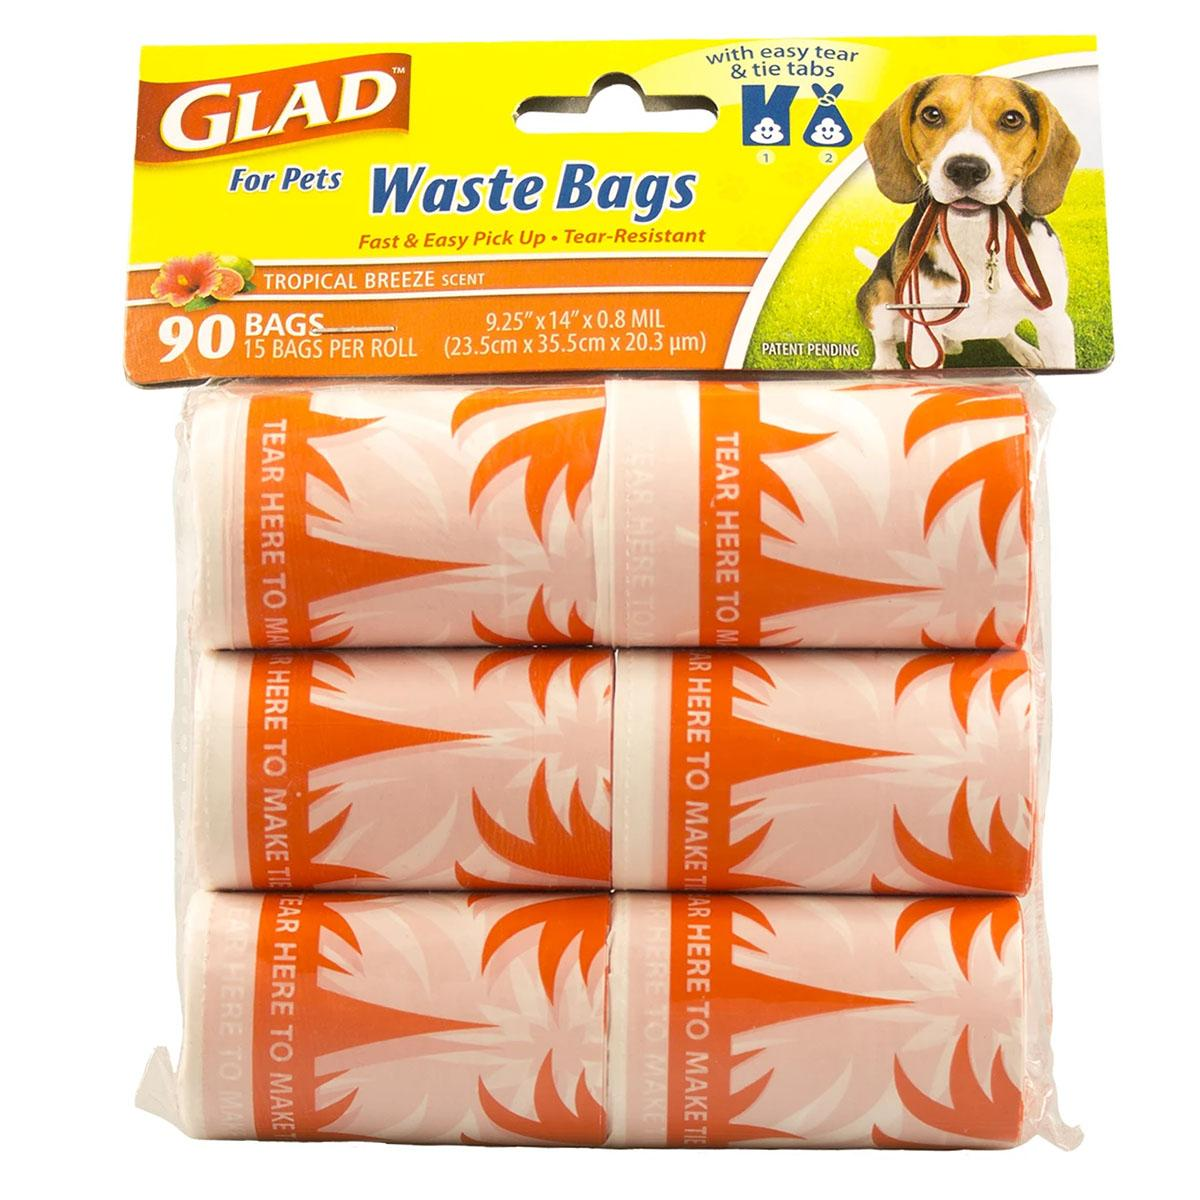 Glad for Pets Extra Large Tropical Breeze Scented Dog Waste Bags Refills - 90 Count